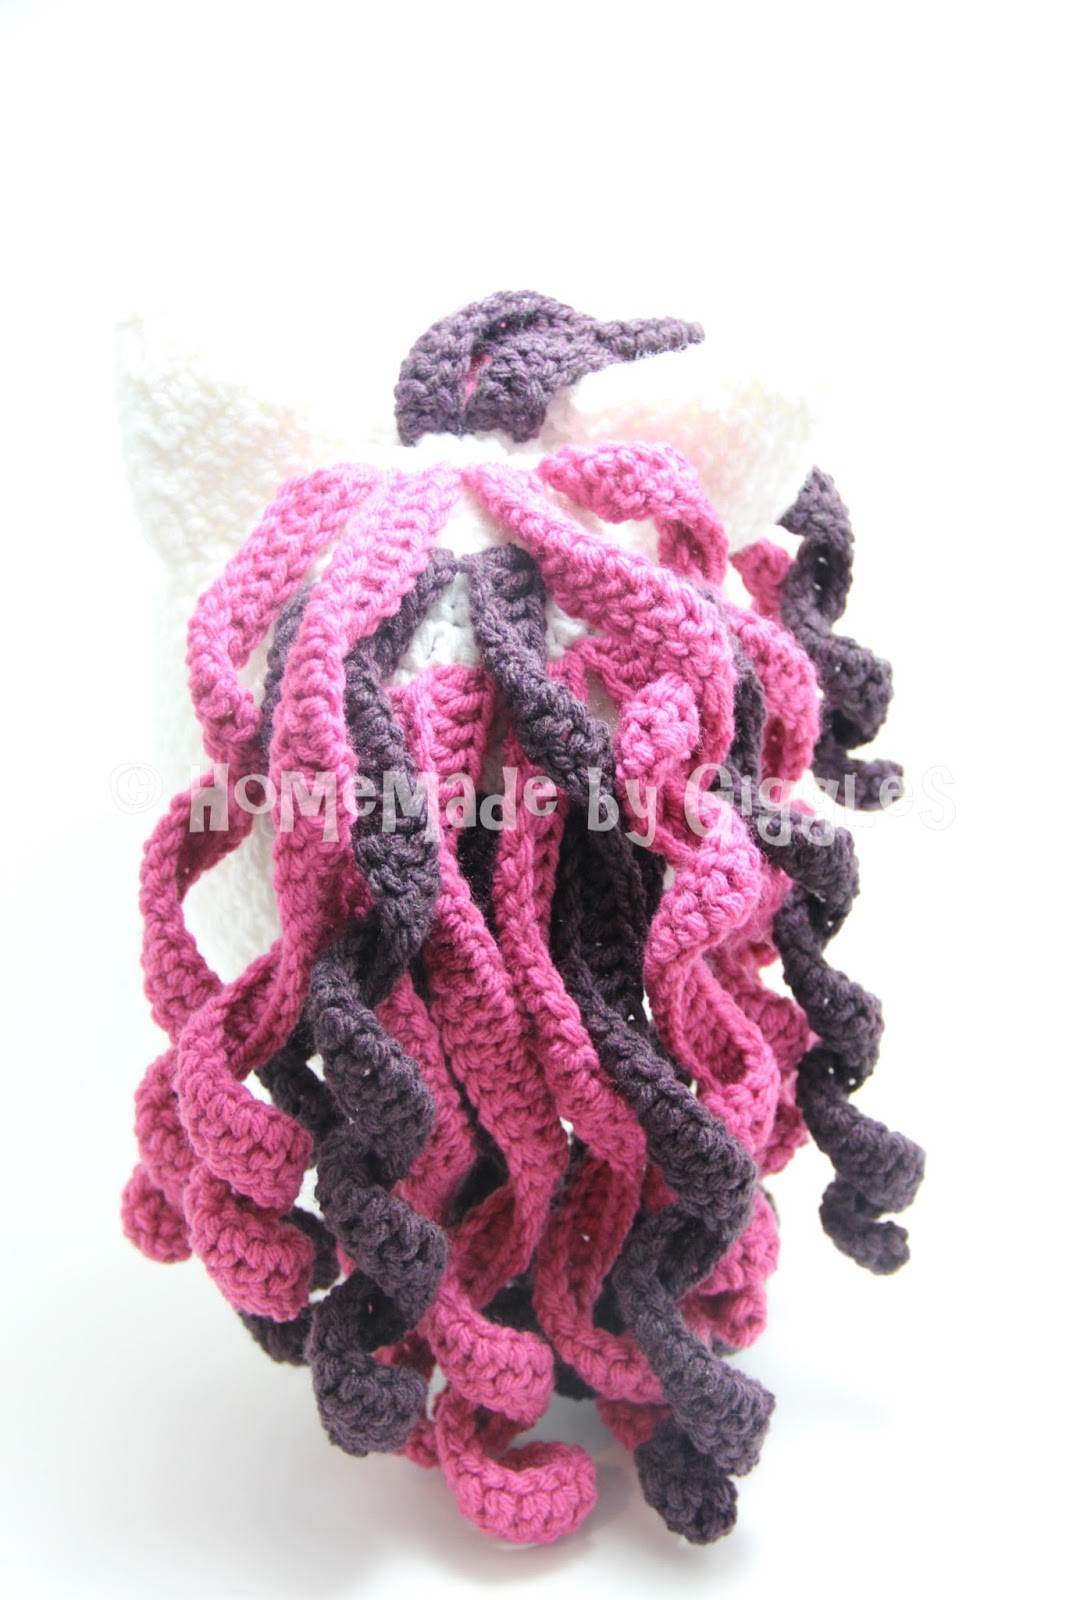 Homemade by Giggles: Unicorn Hat - FREE Crochet Pattern!